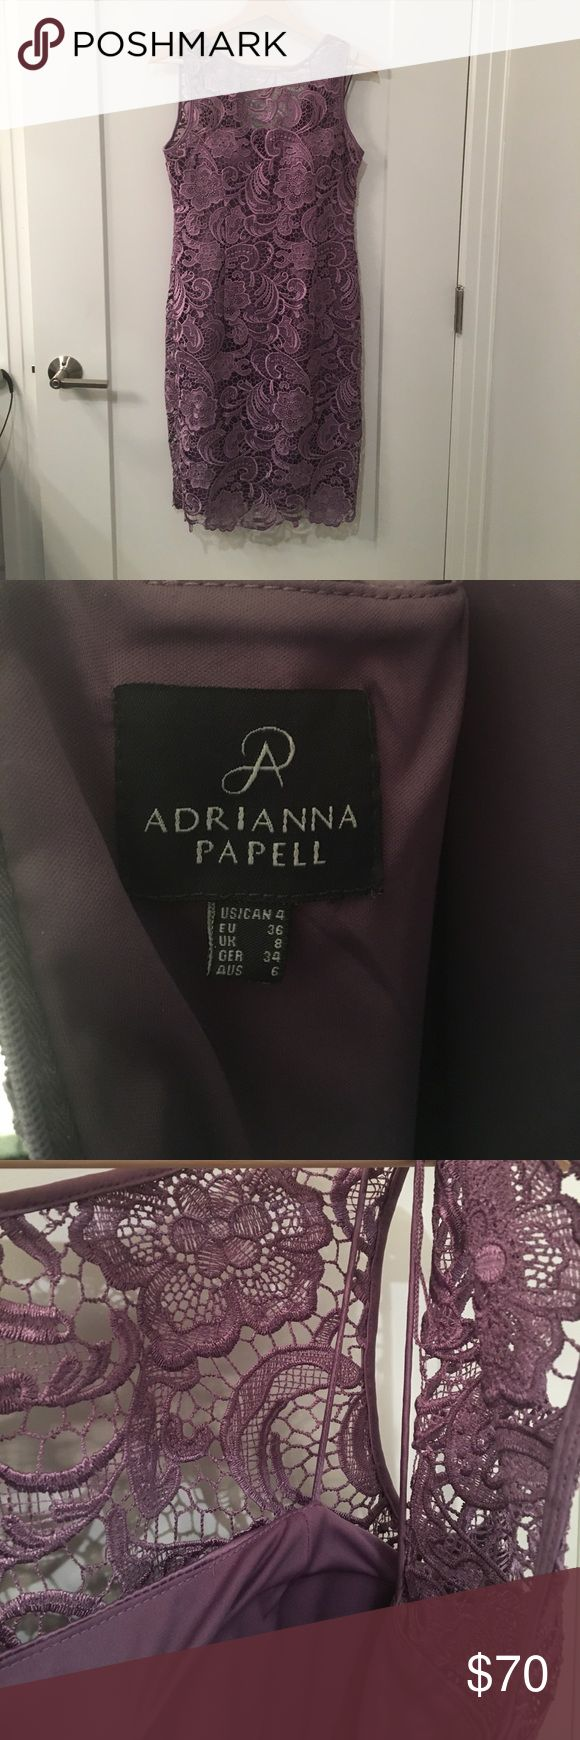 """Adrianna Papell Cocktail Dress Adrianna Papell Lavender Cocktail Dress 👚💜 Size 4. Excellent used condition - no tears, stains, or pulled threads. Worn once to a wedding. Zippered in the back. Very comfortable underlay. Im 5'4"""" and it hit at the knee. Adrianna Papell Dresses"""